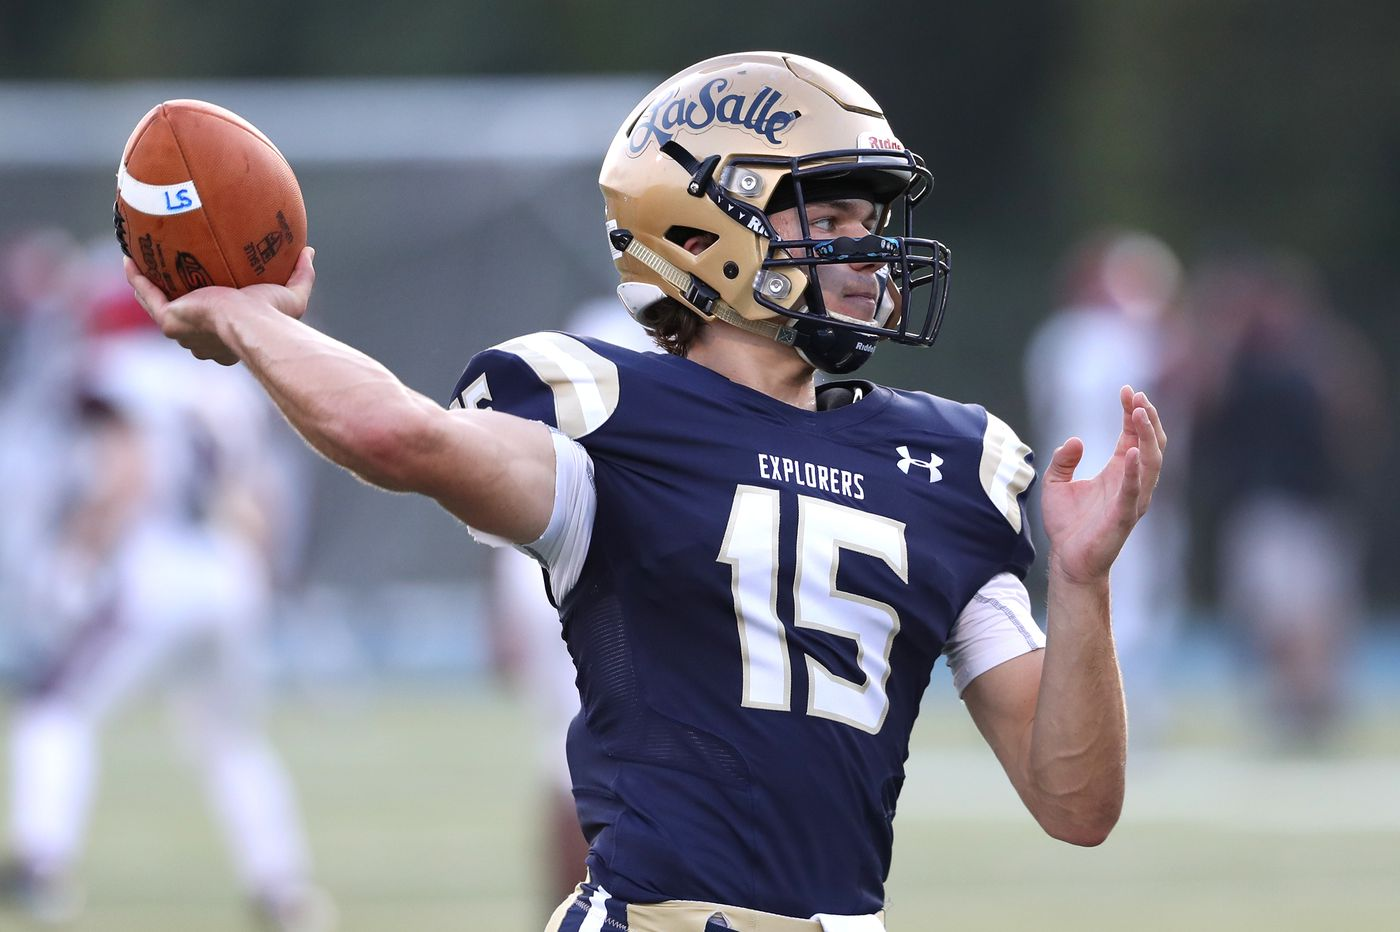 Friday's Southeastern Pa. roundup: La Salle football romps Archbishop Ryan in Catholic League matchup